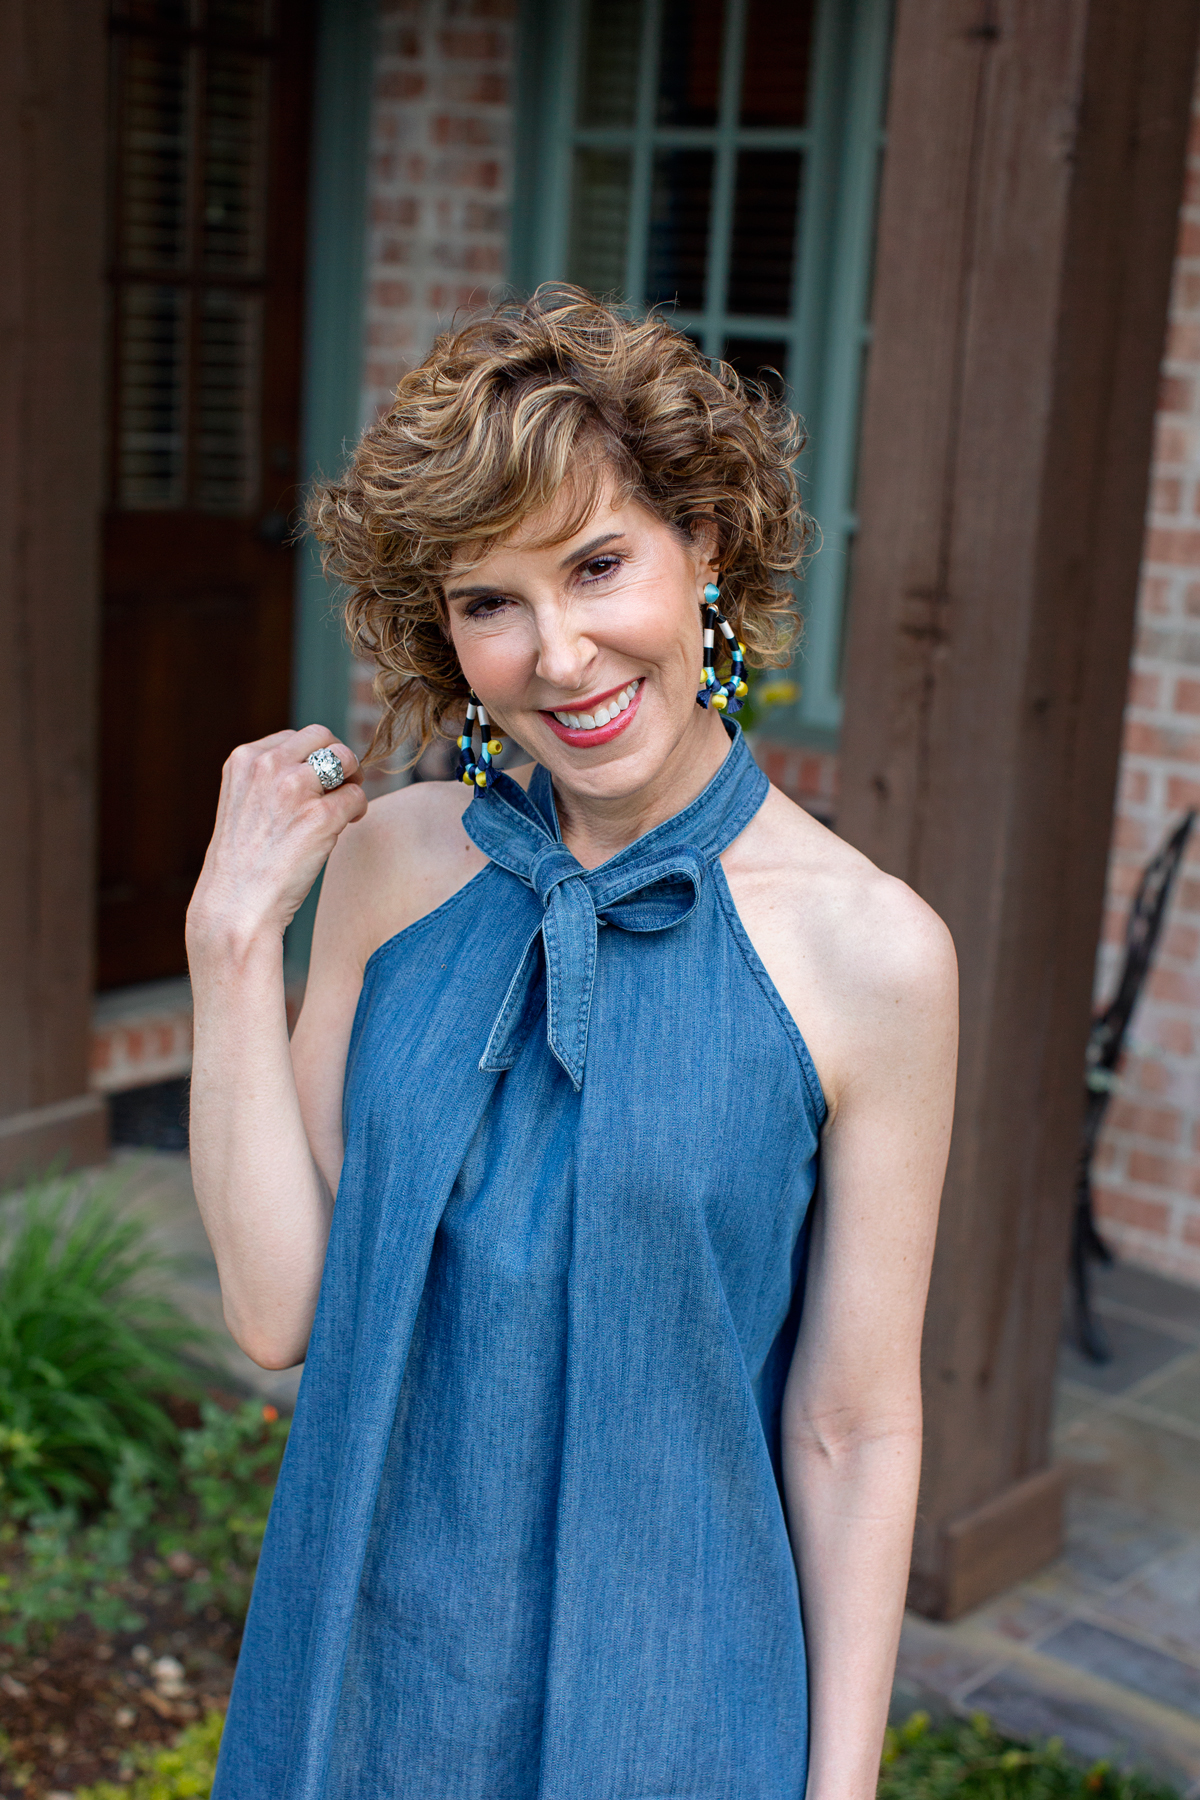 Cece halter neck cotton dress, clean up, clean out, declutter, downsize, downsizing, organize, get organized, how to declutter, tips for decluttering, tips for getting organized, how to get organized, how to downsize, tips for downsizing, professional organizer, cut the clutter, cut clutter, how to simplify, tips to simplify, give away stuff, empty nest, empty nester, empty nesters, moving, throwing out things, empty nester moving, empty nest downsize, empty nest downsizing, empty nester downsizing, baublebar Sardinia drop earrings